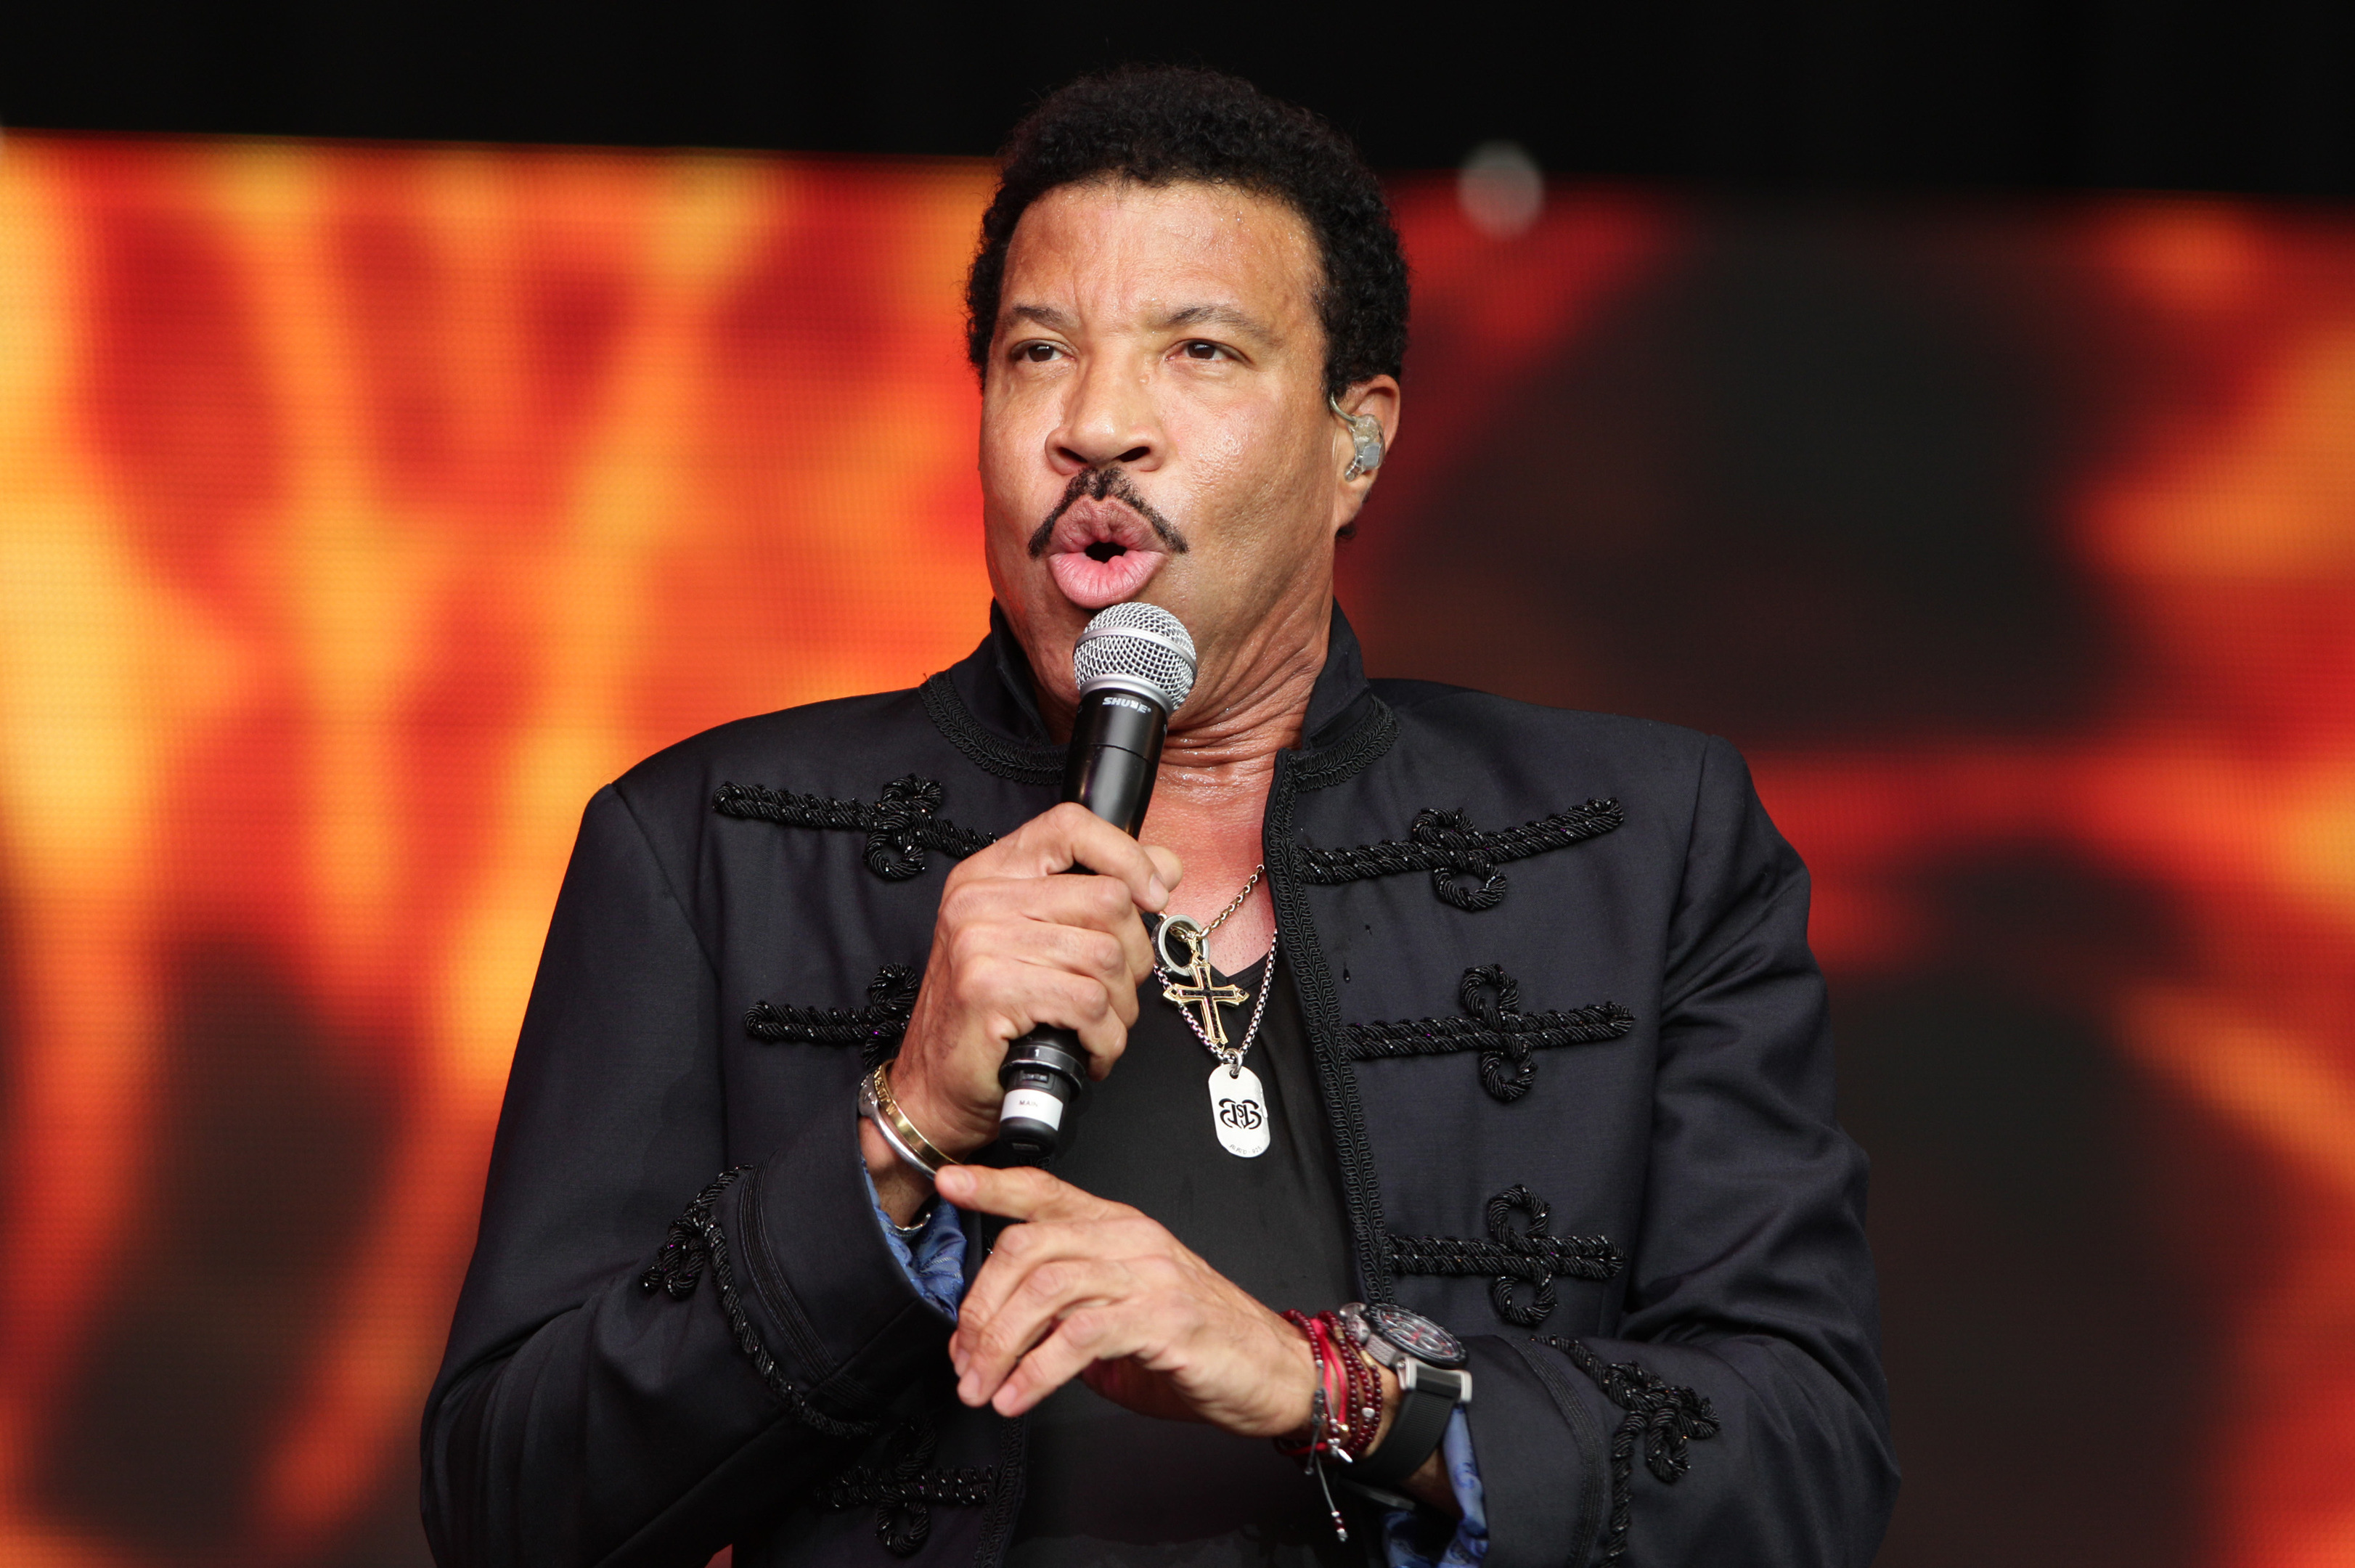 Lionel Richie is coming to Tayside